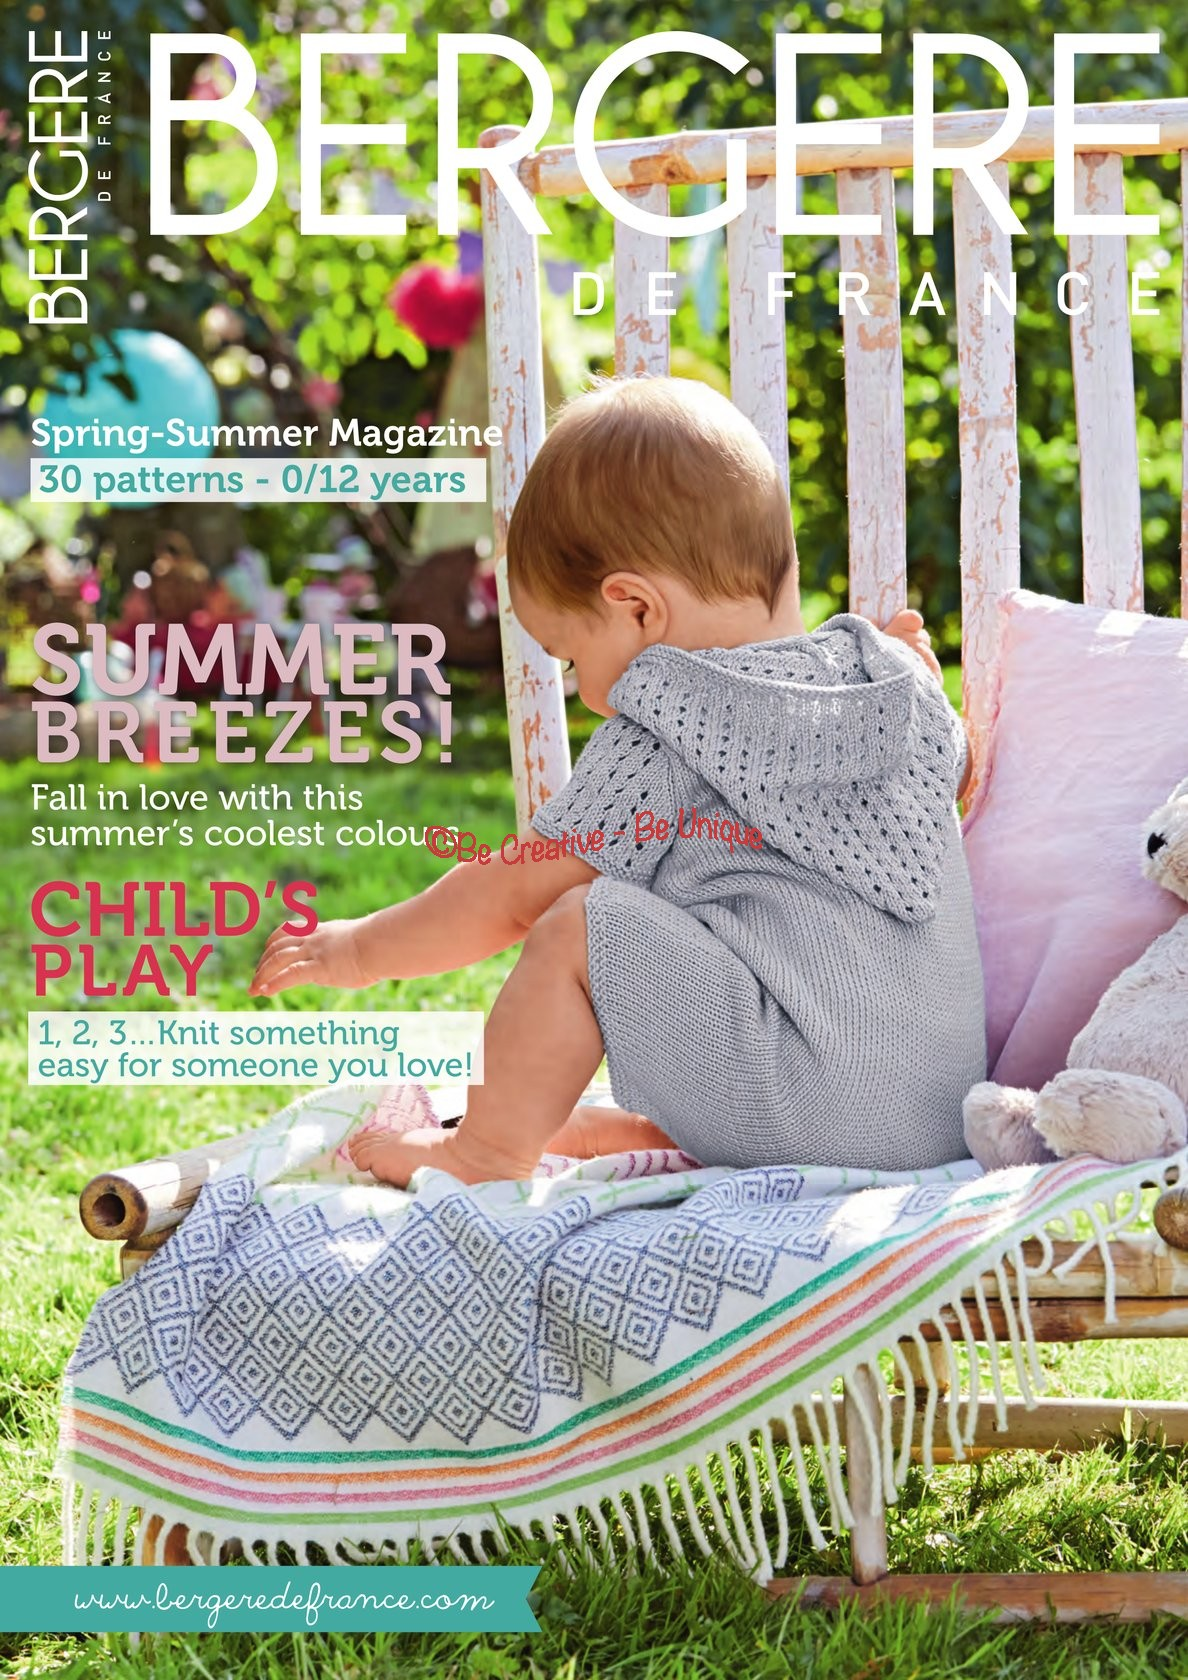 Bergere de France - Mag 179 - Baby & Children - Spring/Summer